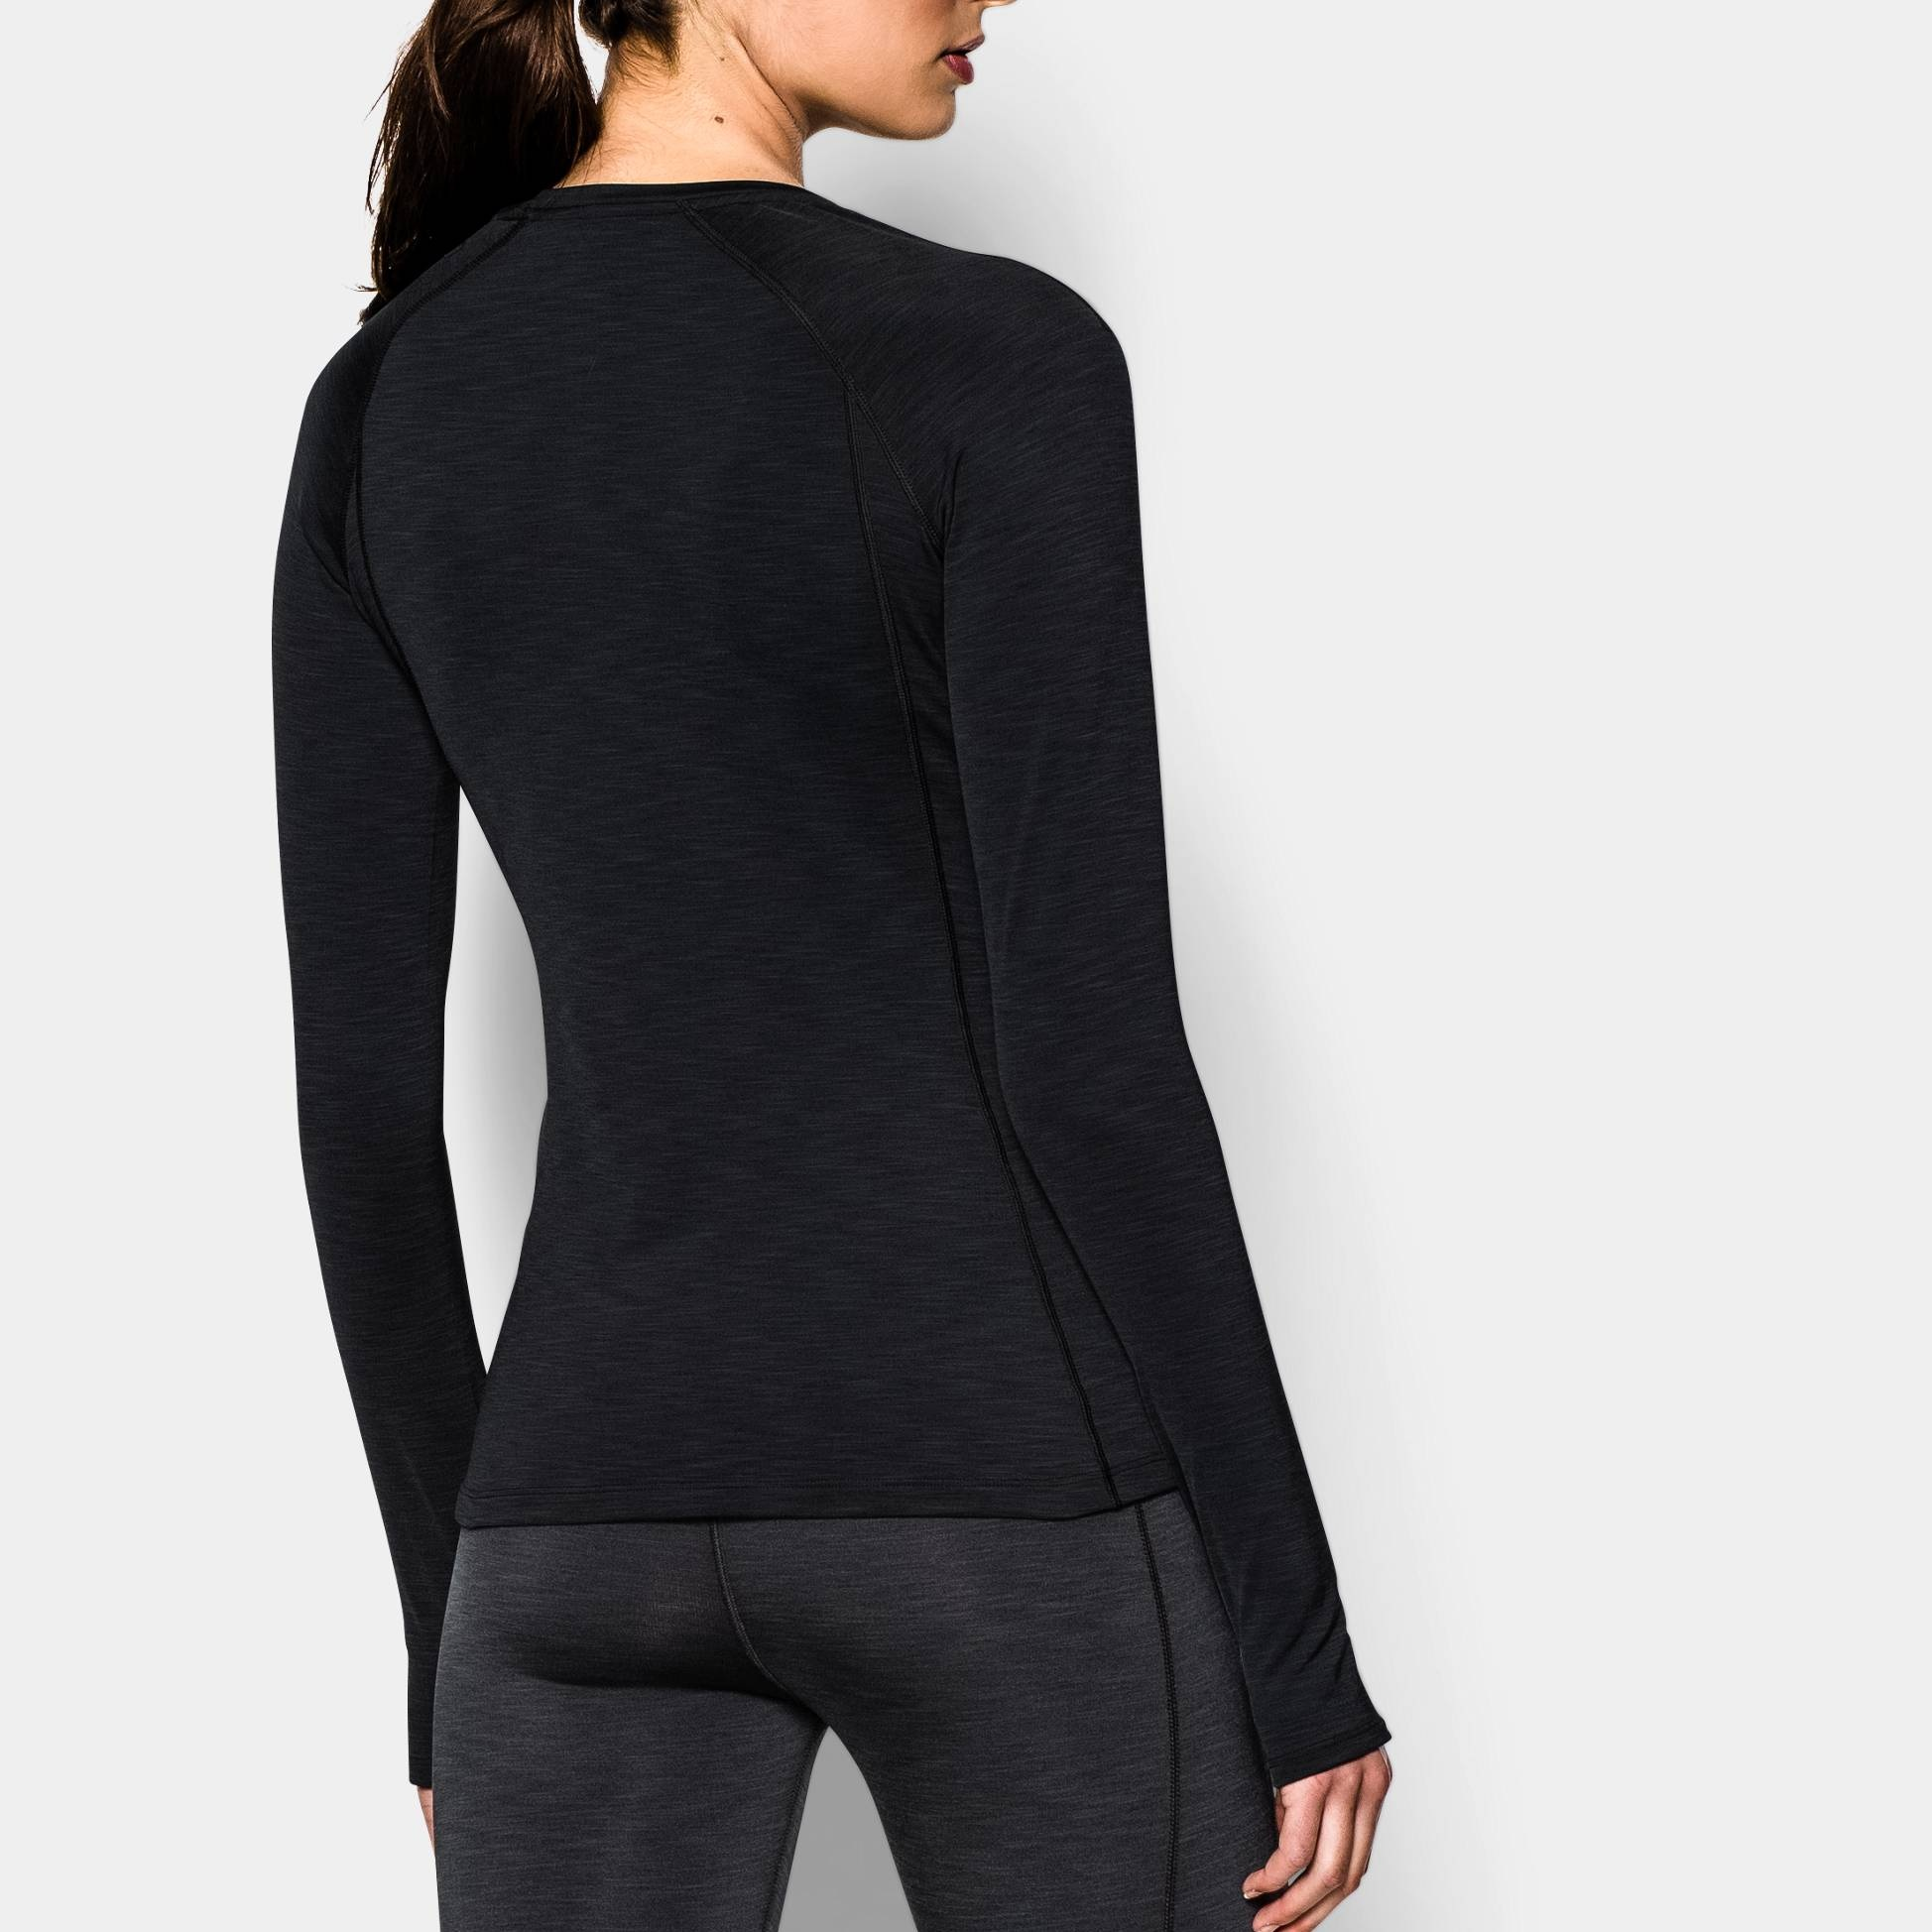 Clothing Under Armour Cold Gear Cozy Crew Fitness